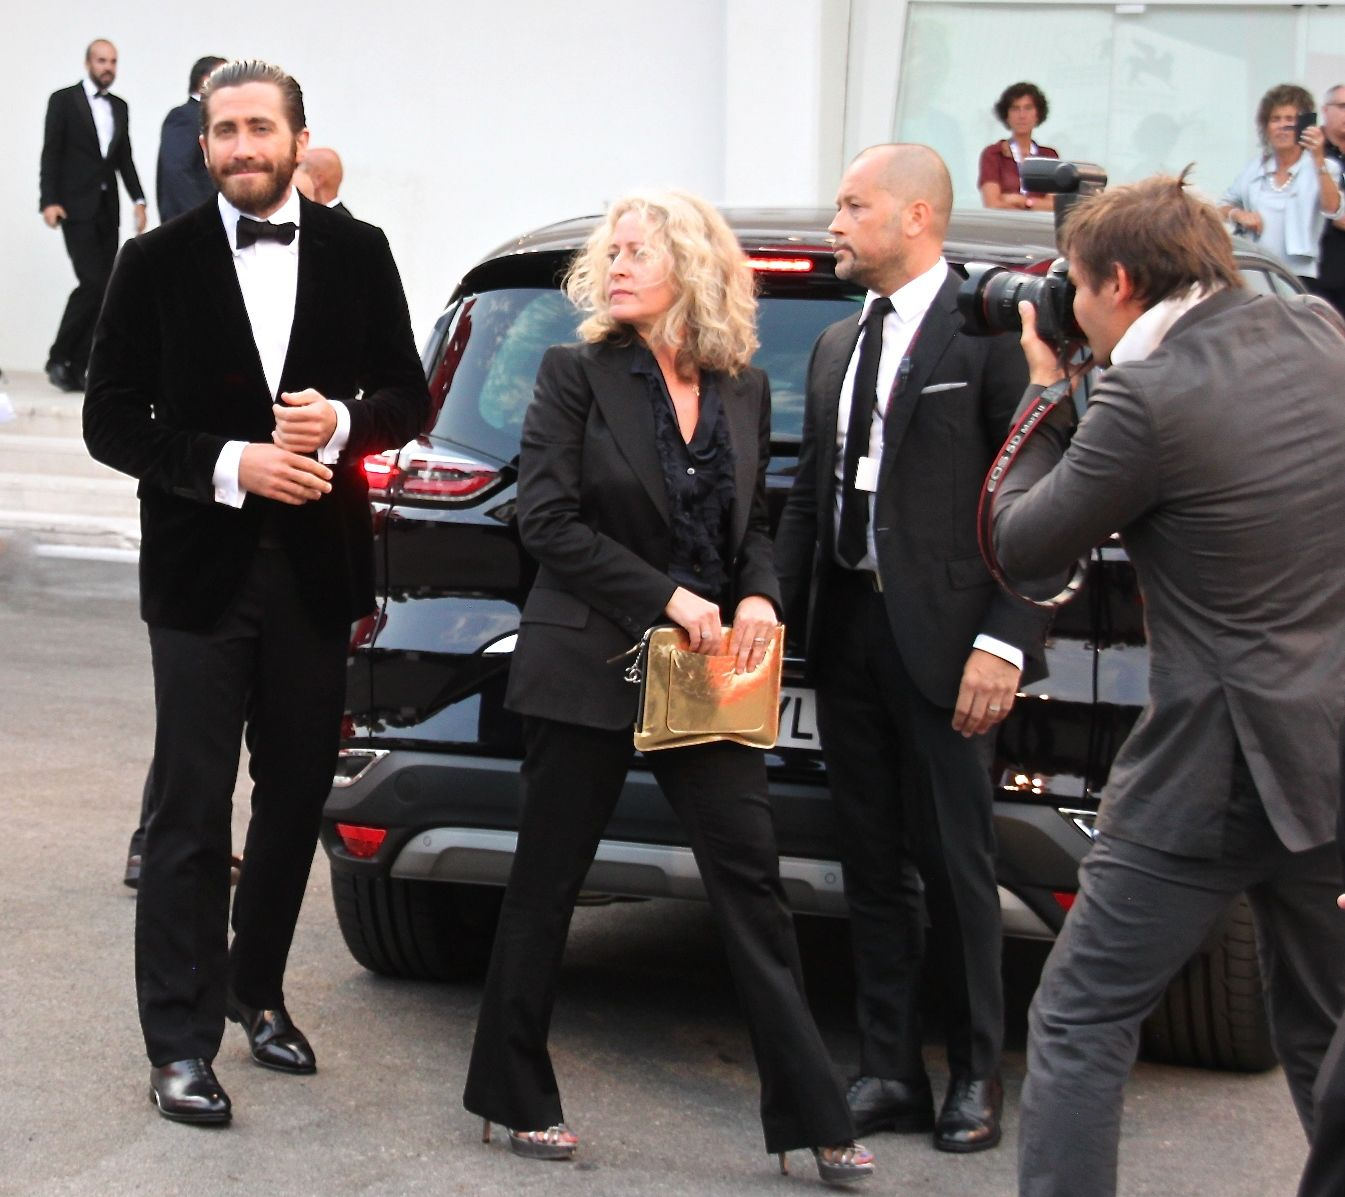 Jake Gyllenhaal arrives for the Everest premiere in Venice, 2015